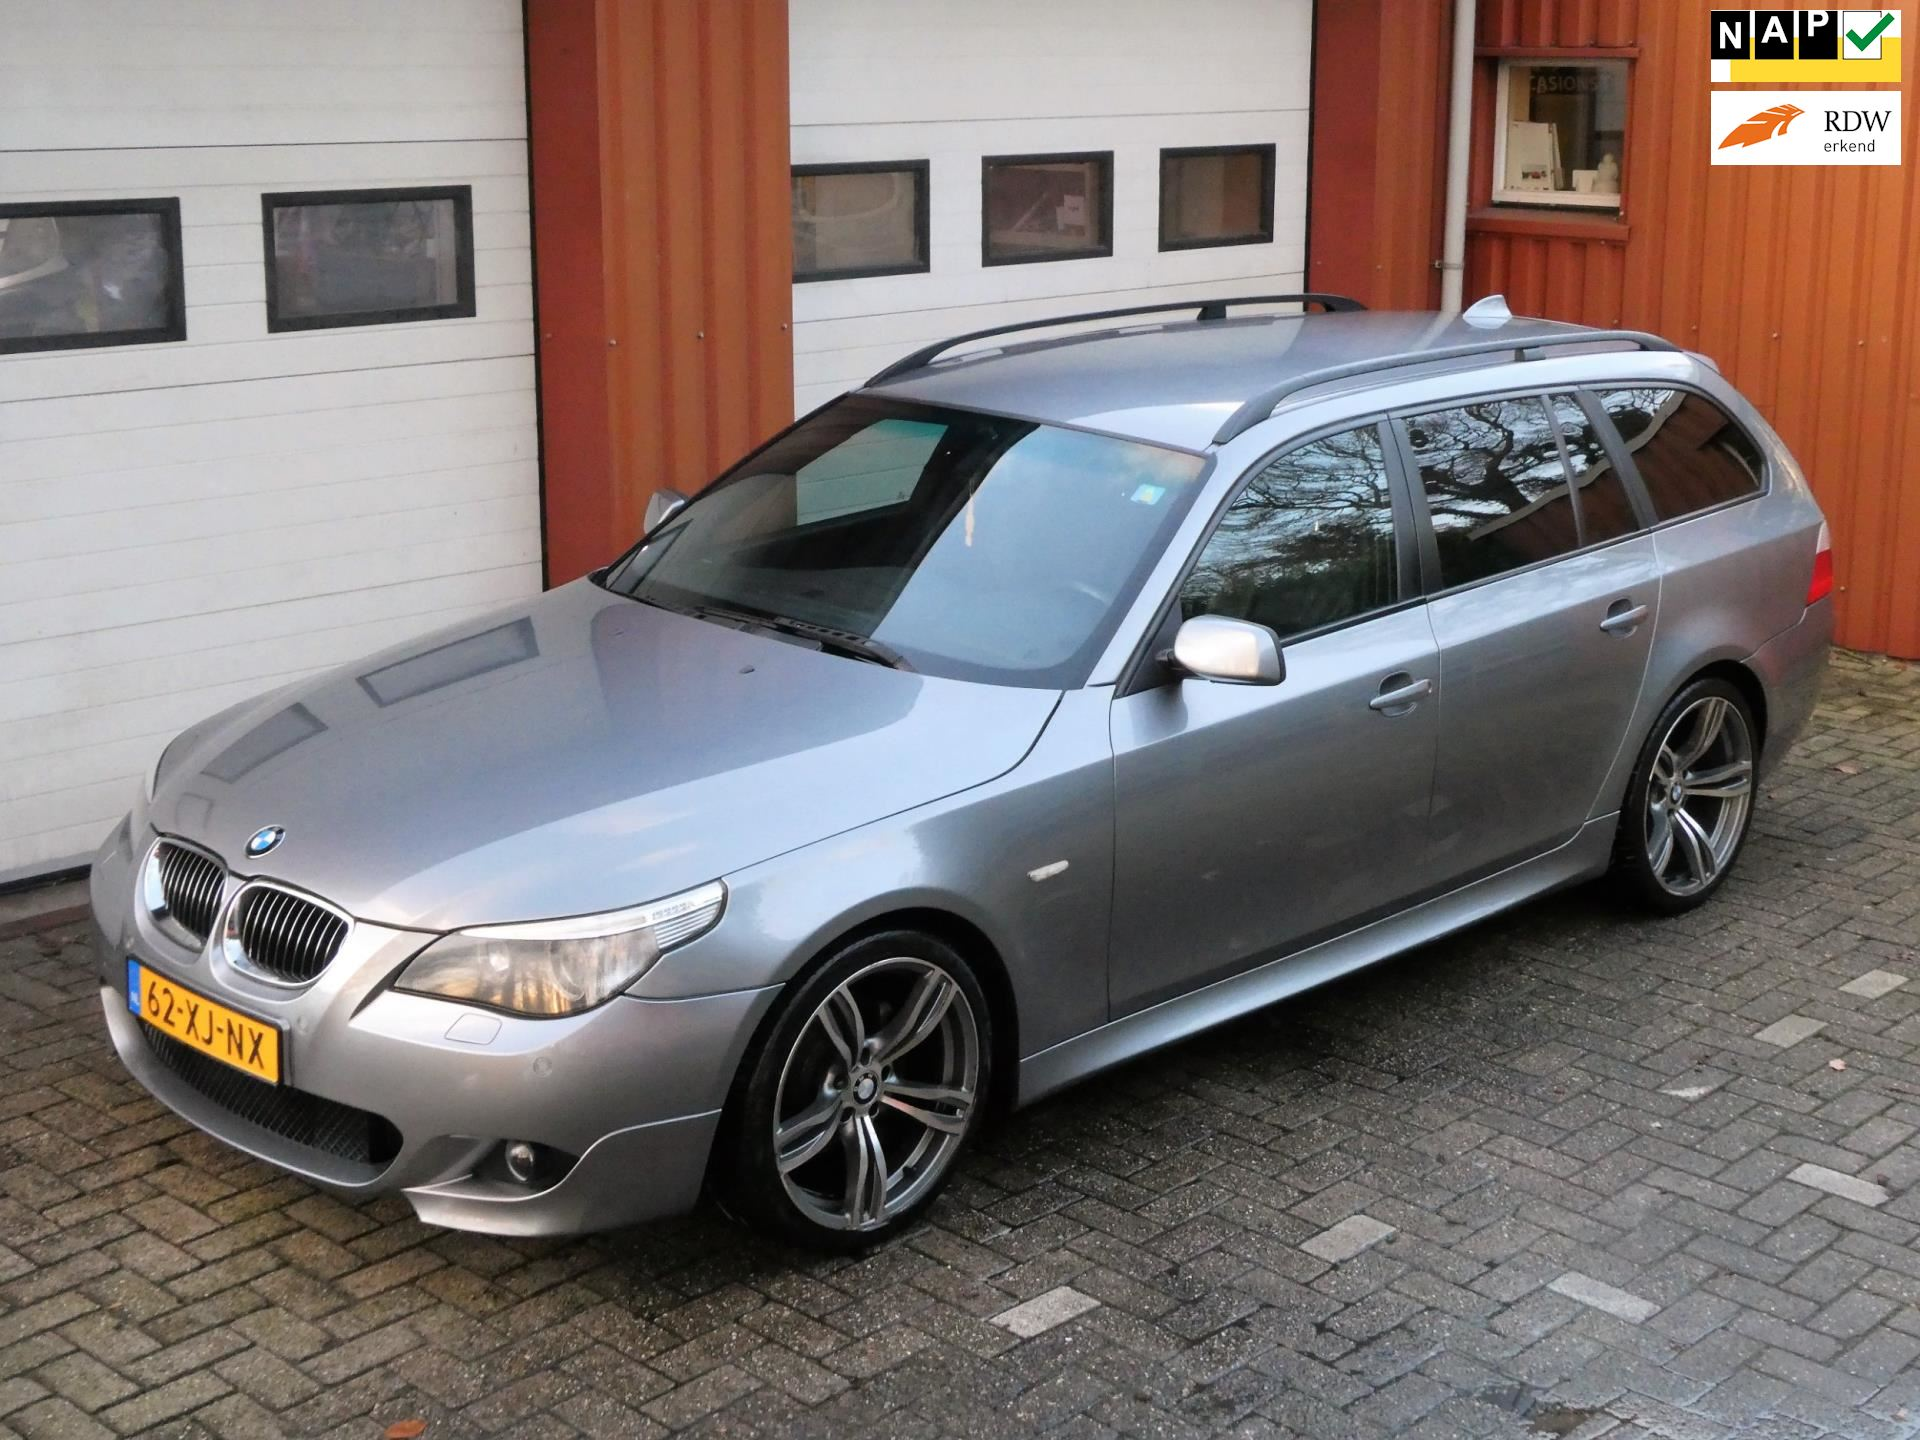 BMW 5-serie Touring occasion - Autohandel Post